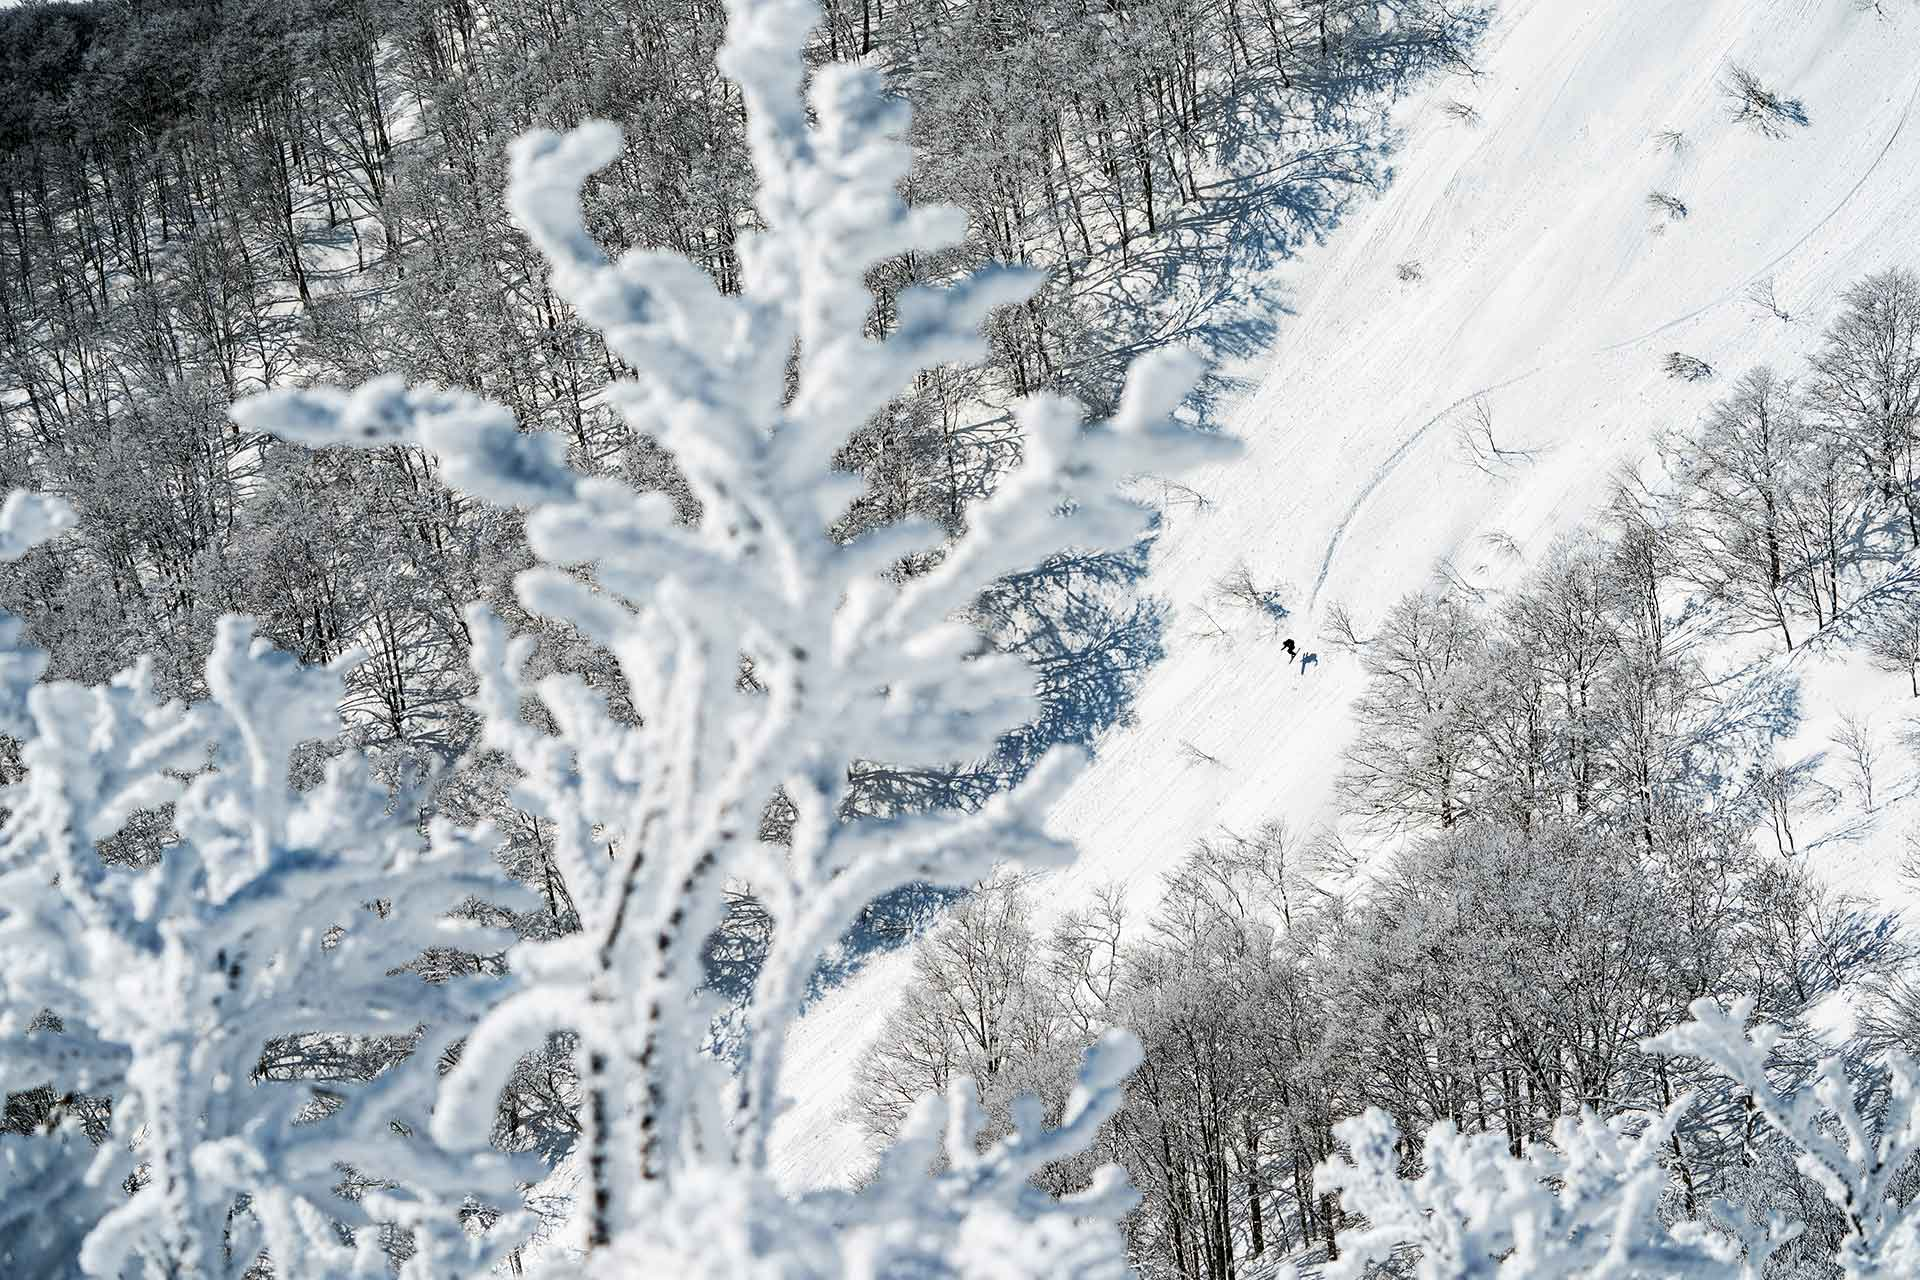 Thrilling side-country wide open terrain accessible via ski lifts